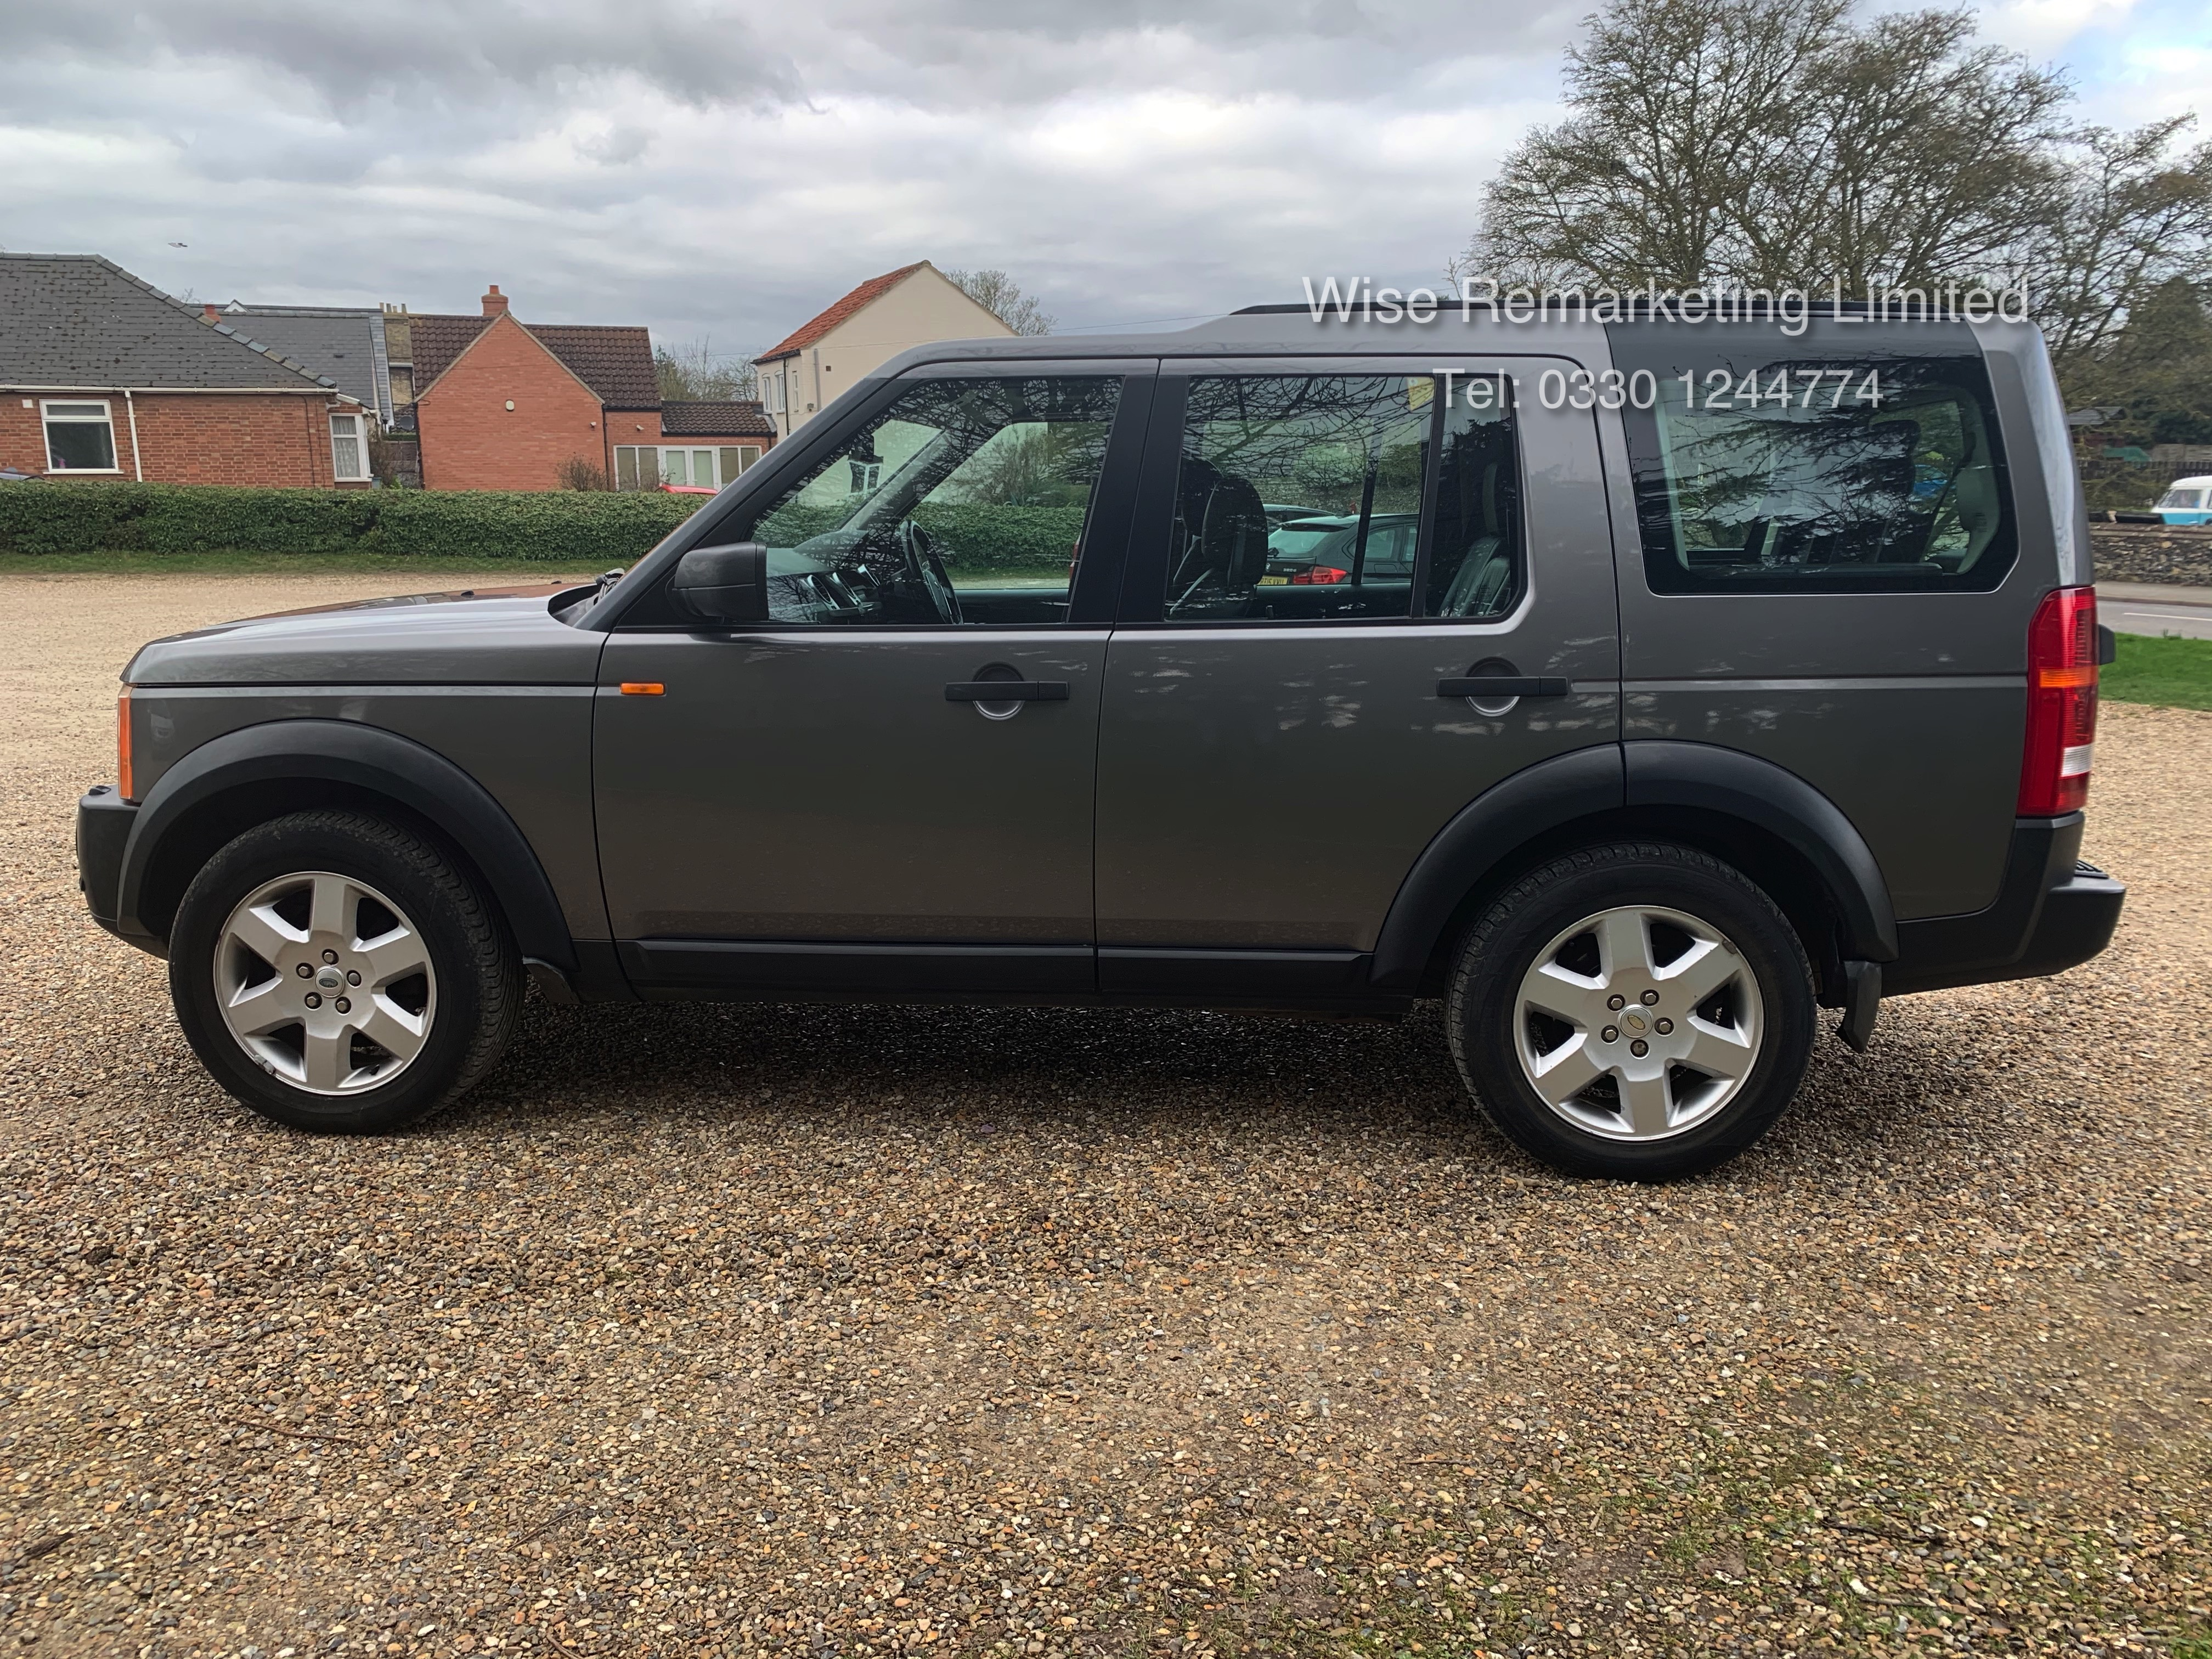 Land Rover Discovery 2.7 TDV6 HSE - Automatic - 2008 Reg - Full Leather - 7 Seater - Sat Nav - - Image 5 of 31